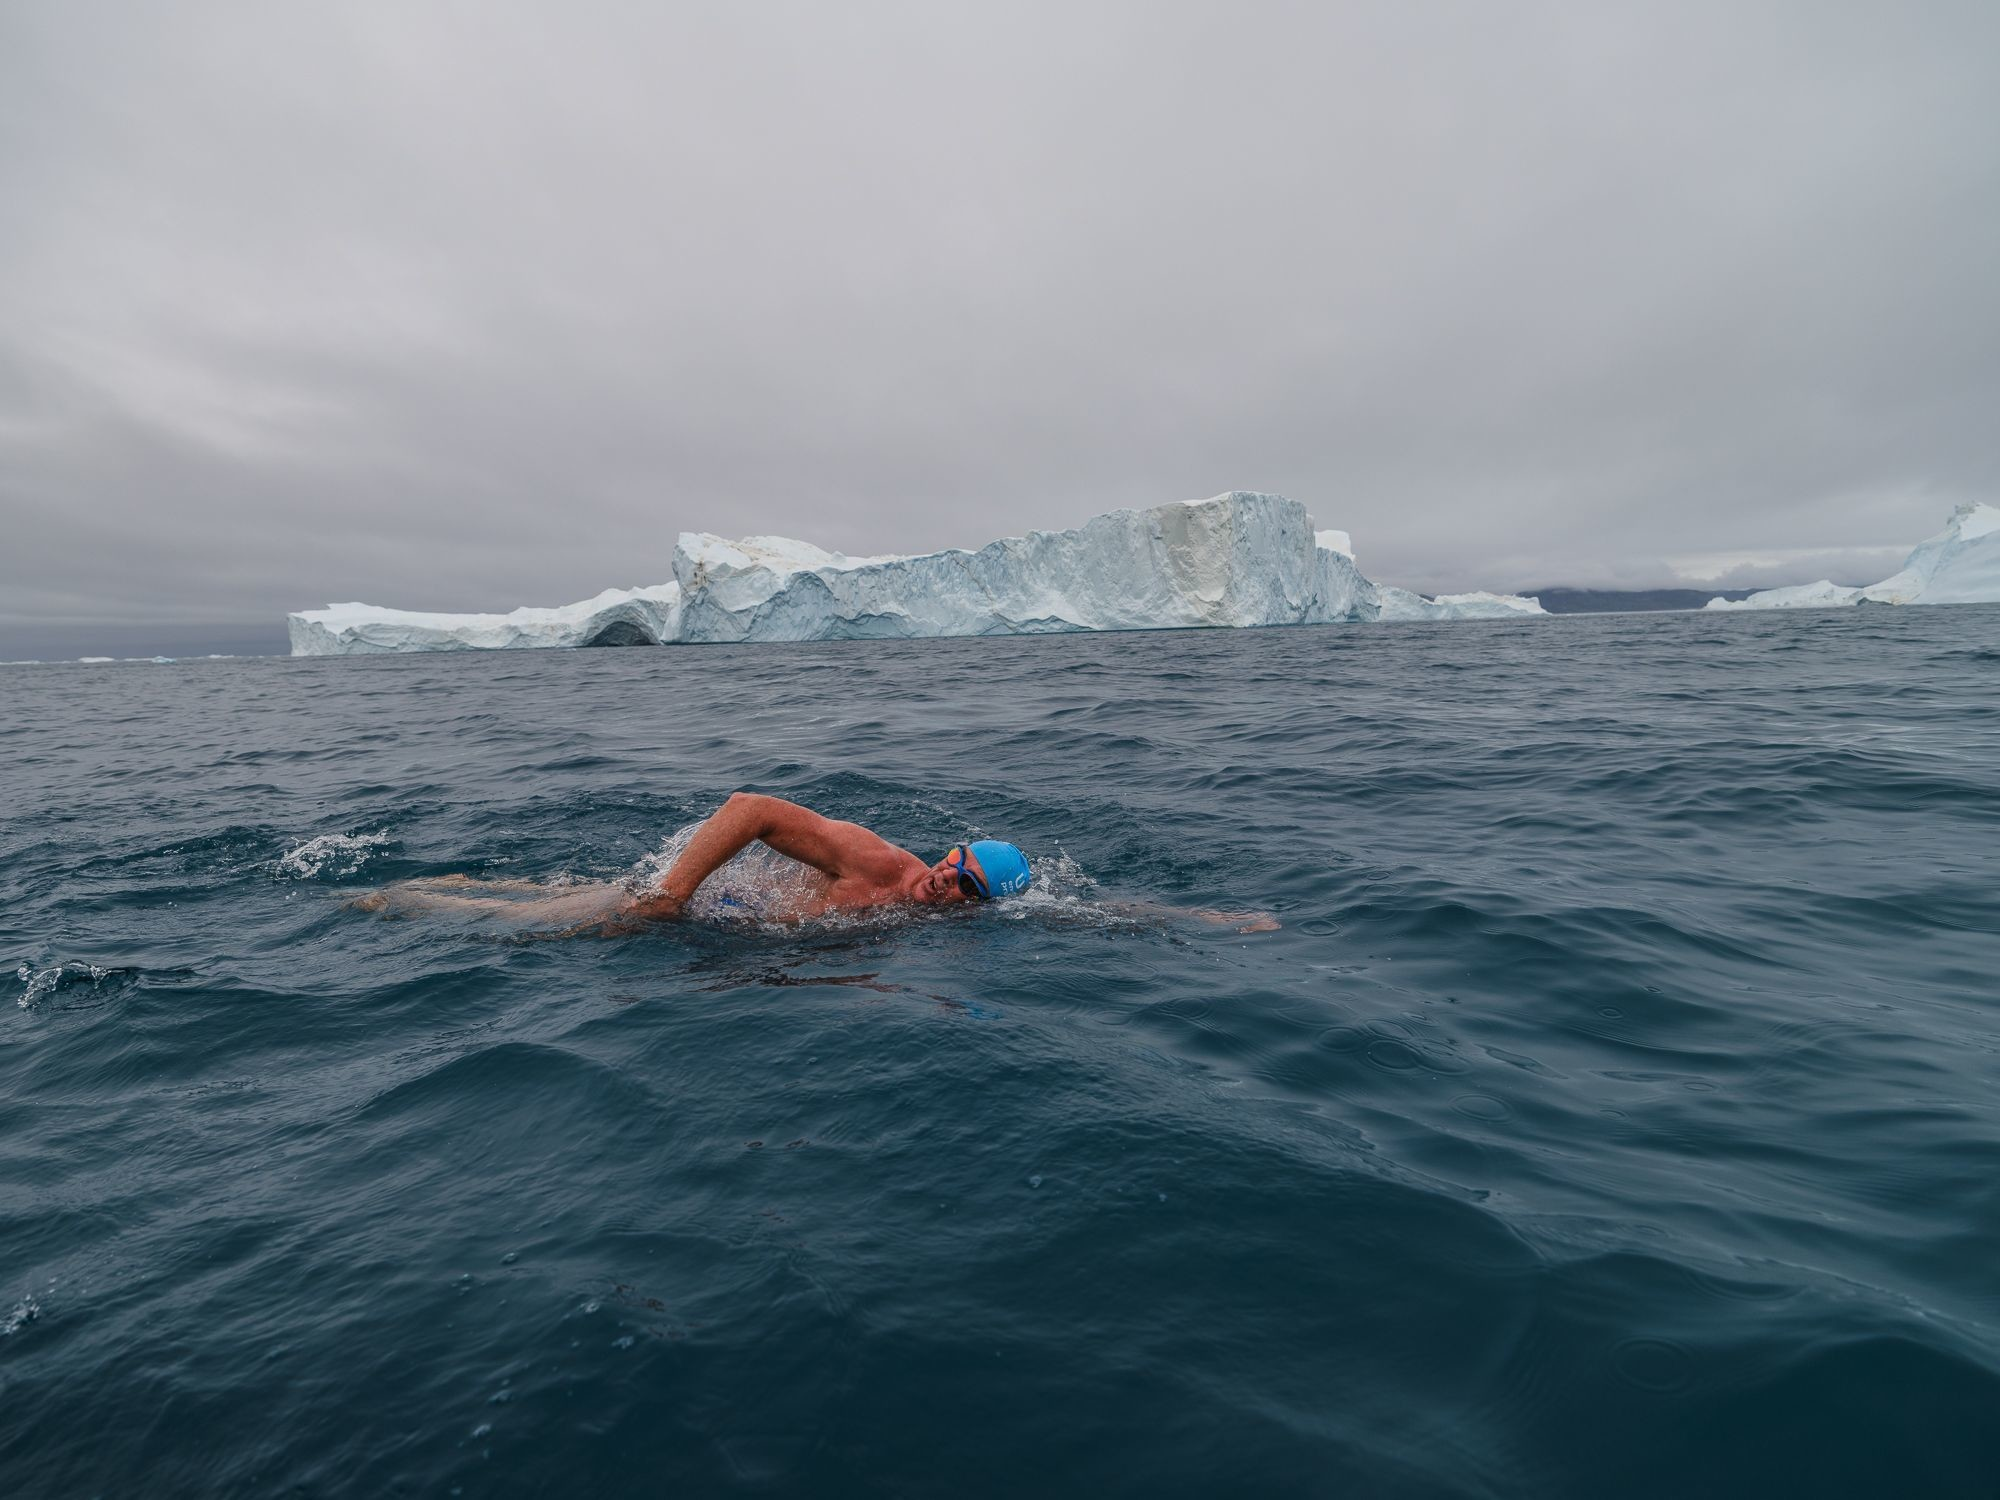 Lewis Pugh is pictured swimming past an iceberg, as part of his series of extreme swims to raise awareness of climate change.